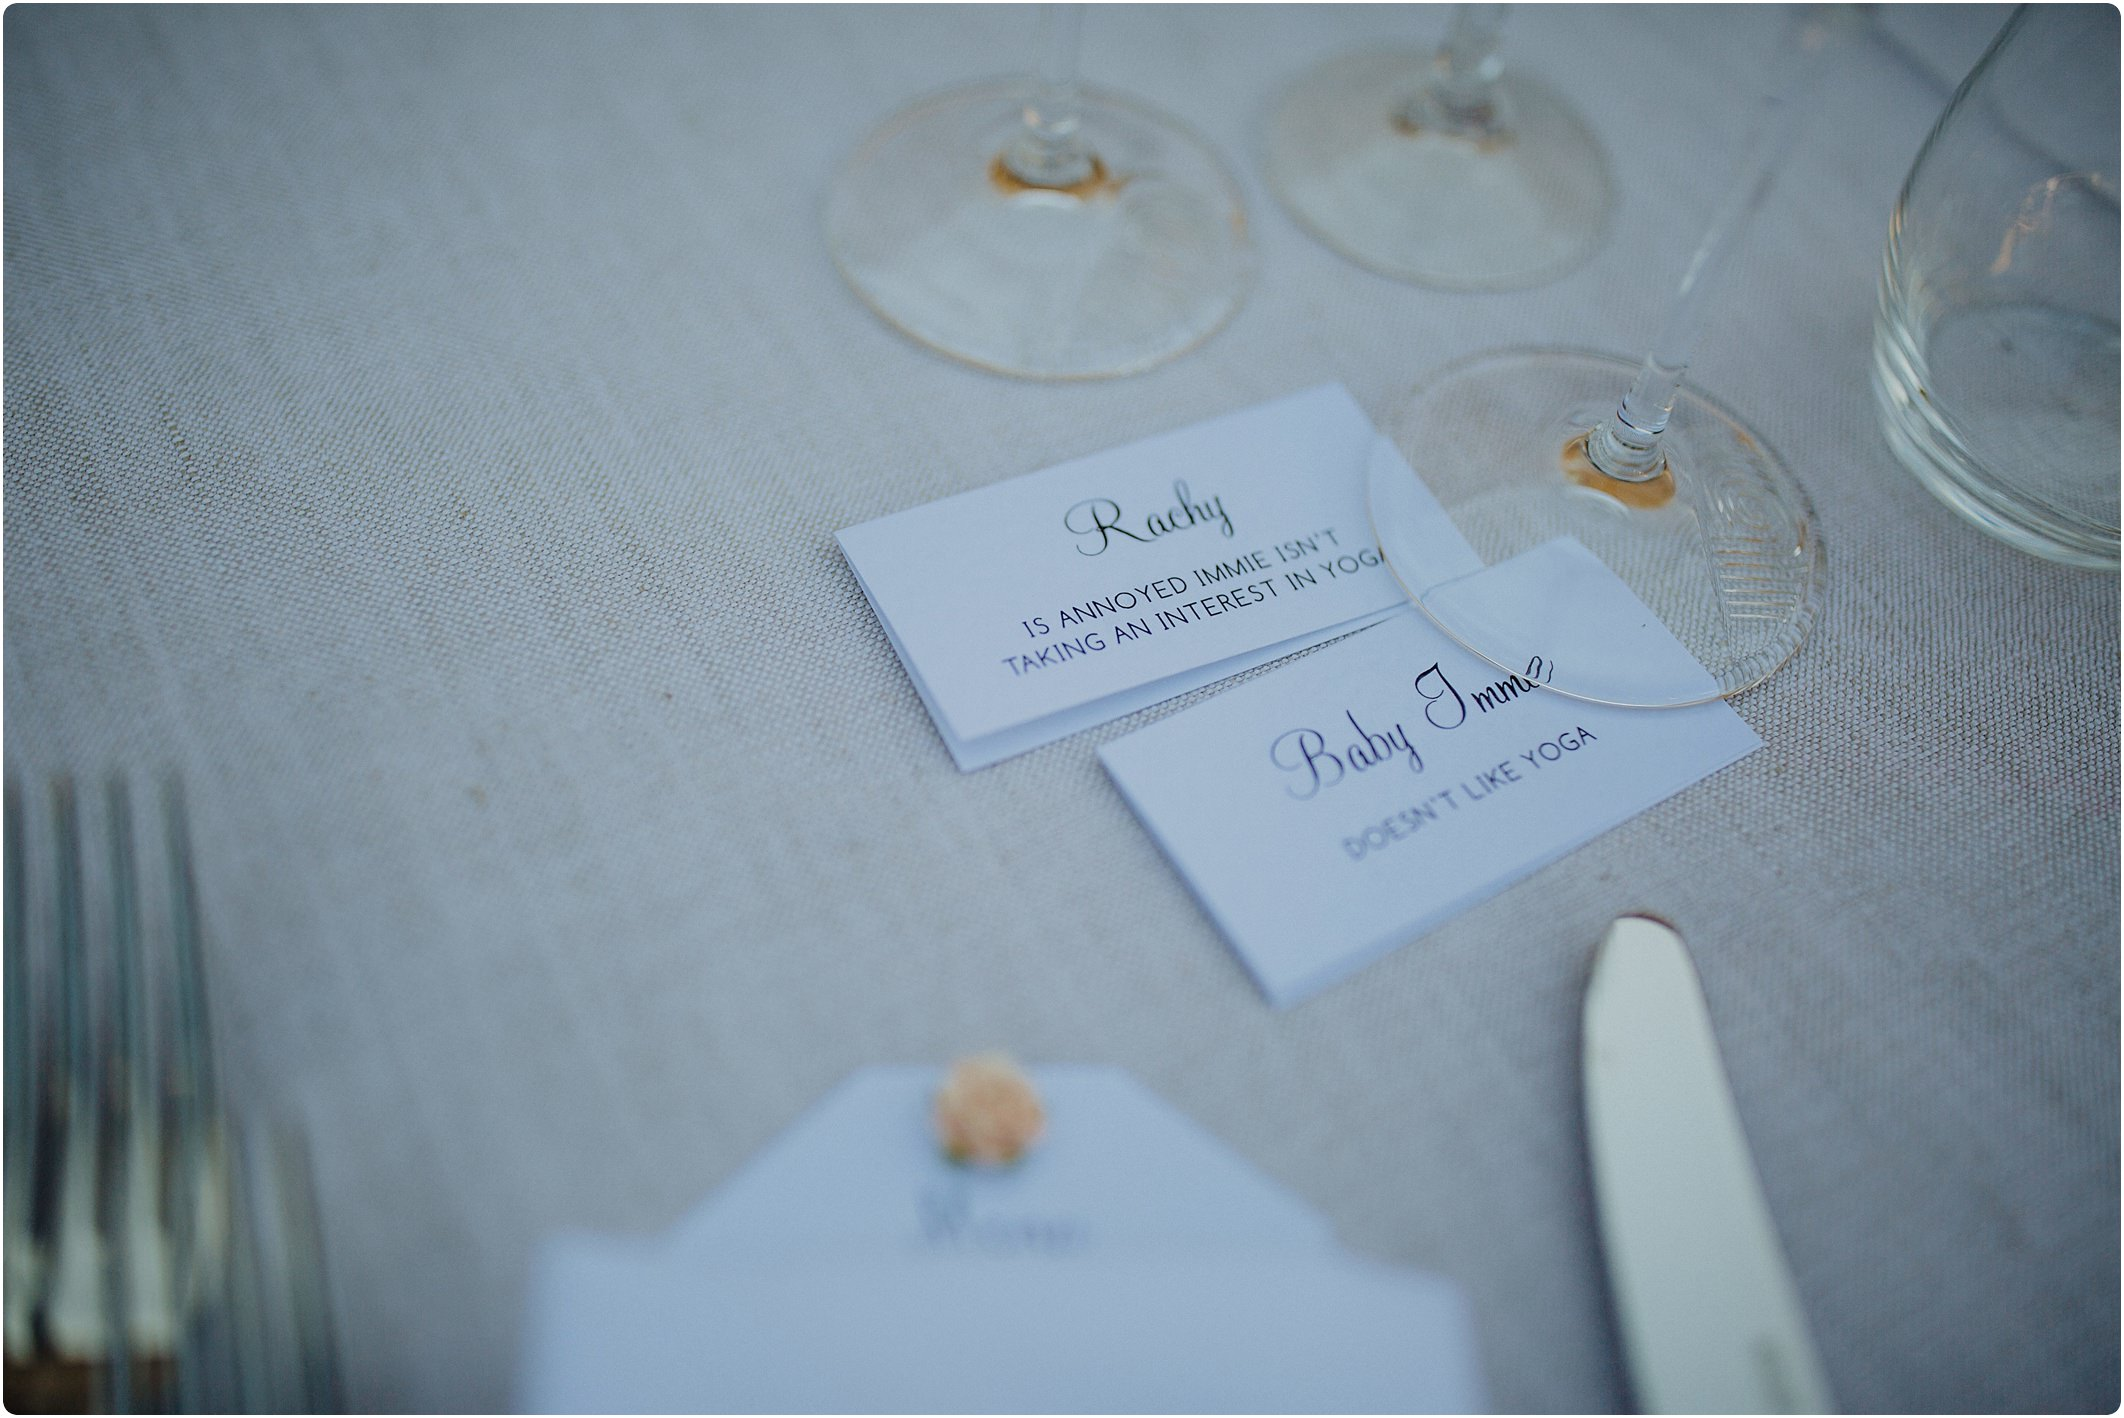 funny name cards at a villa podernovo wedding